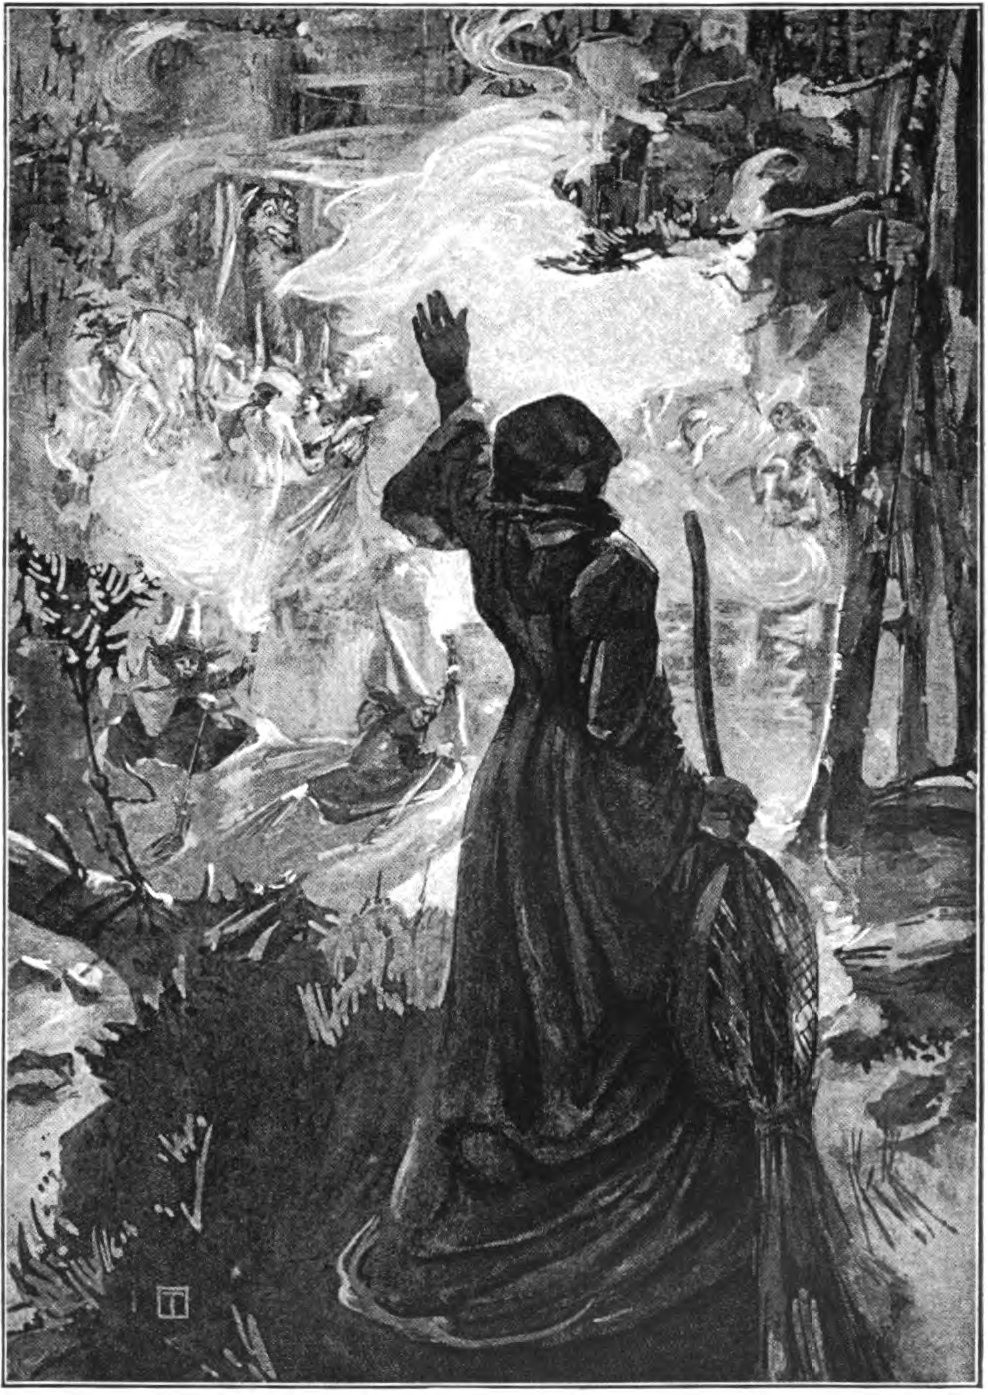 Witches of Delnabo, James Torrance, 1901